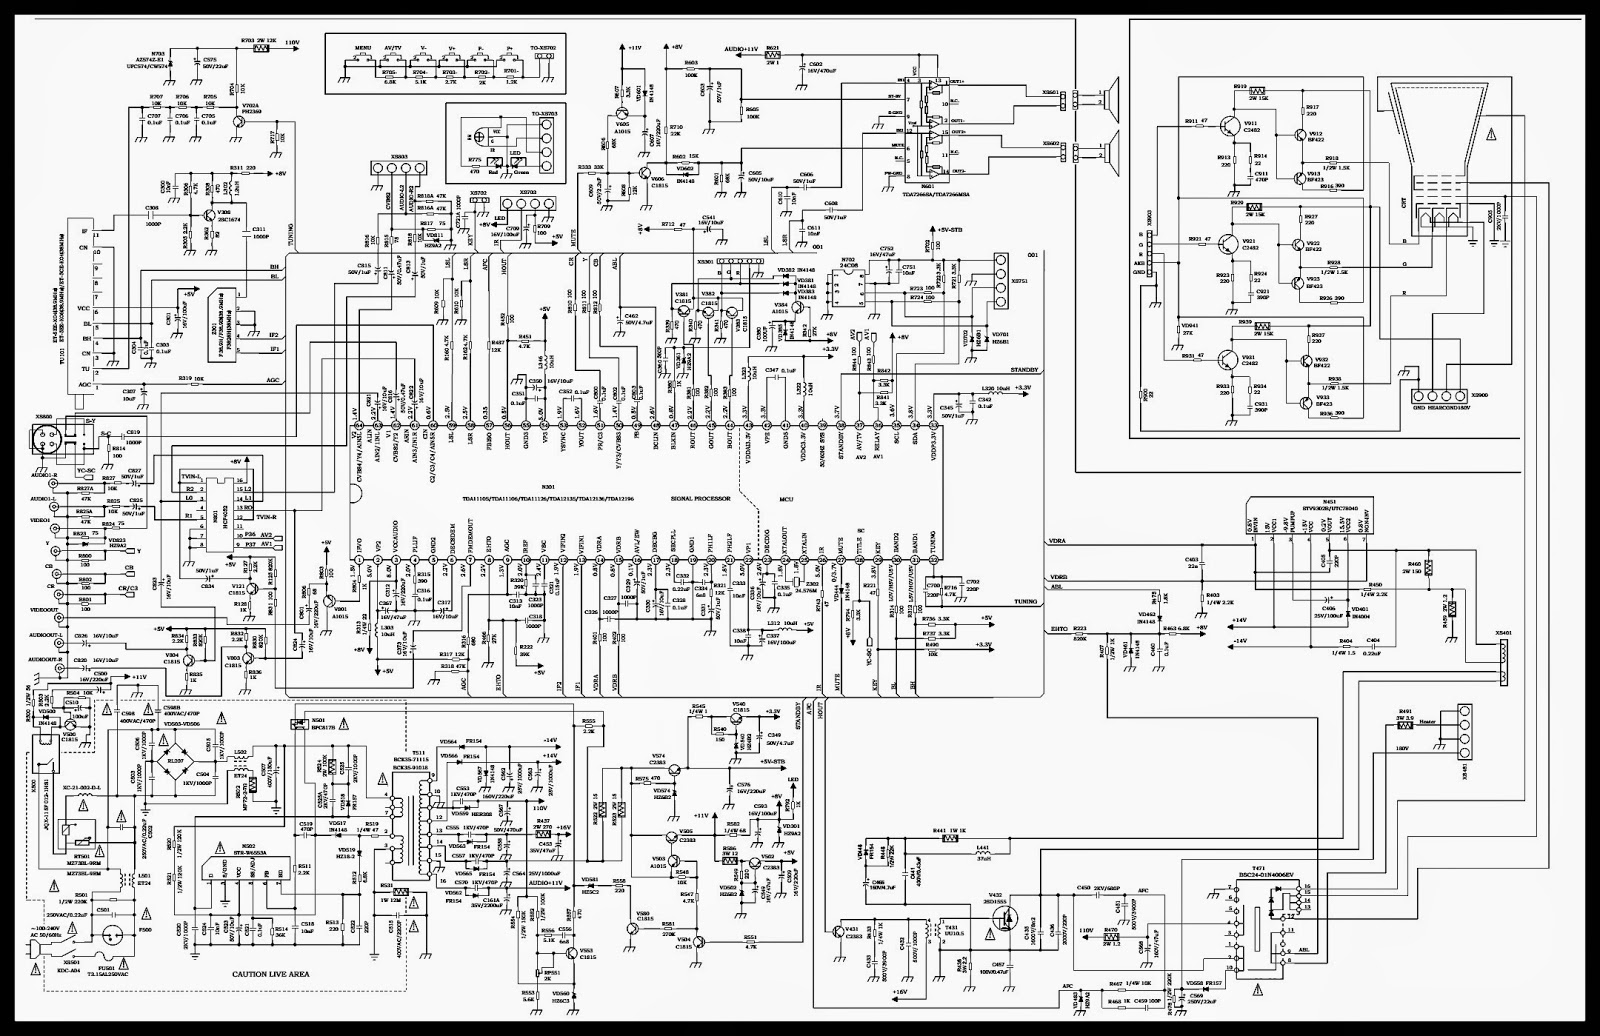 color tv circuit diagram - tda11105